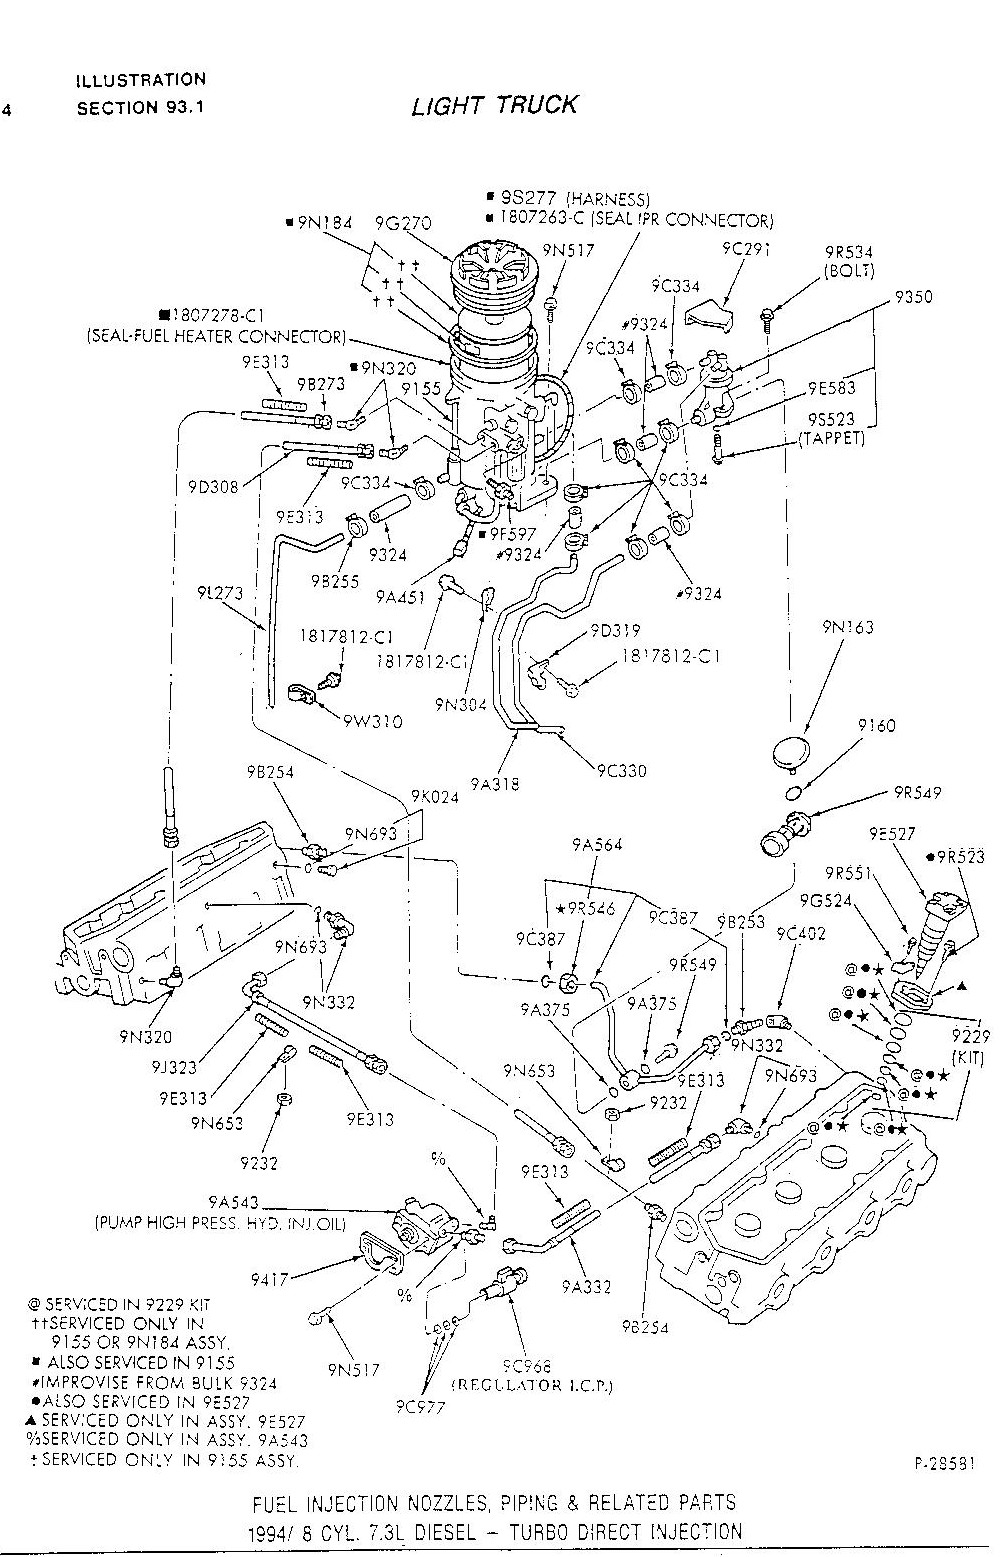 Enchanting wiring diagram for a 1997 ford f250 heavy duty images